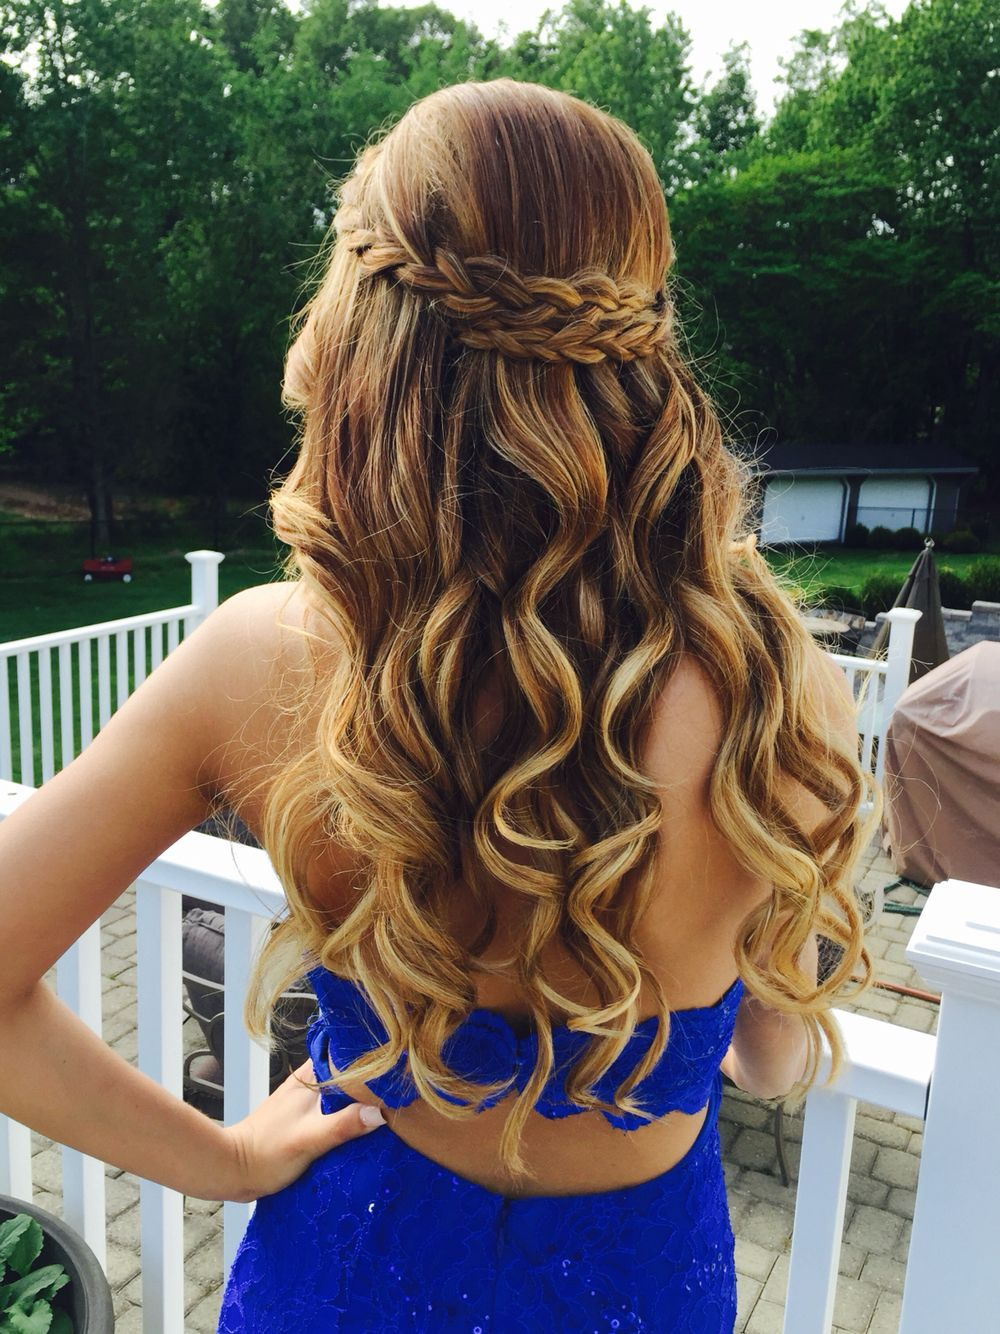 Perfect Prom Hairstyles For A Head Turning Effect In The Party